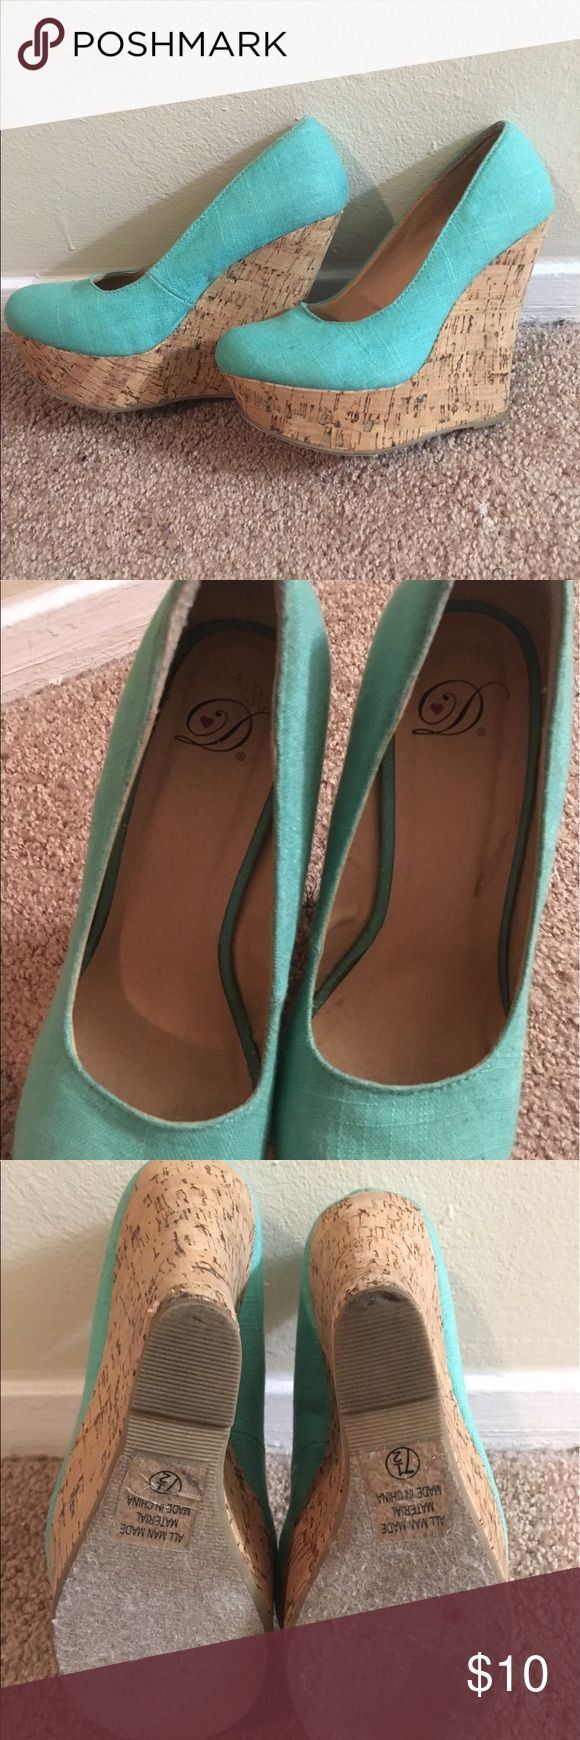 Cute Turquoise Wedges Super cute Turquoise wedges size 7 1/2! Only worn 2-3 times! Shoes Heels